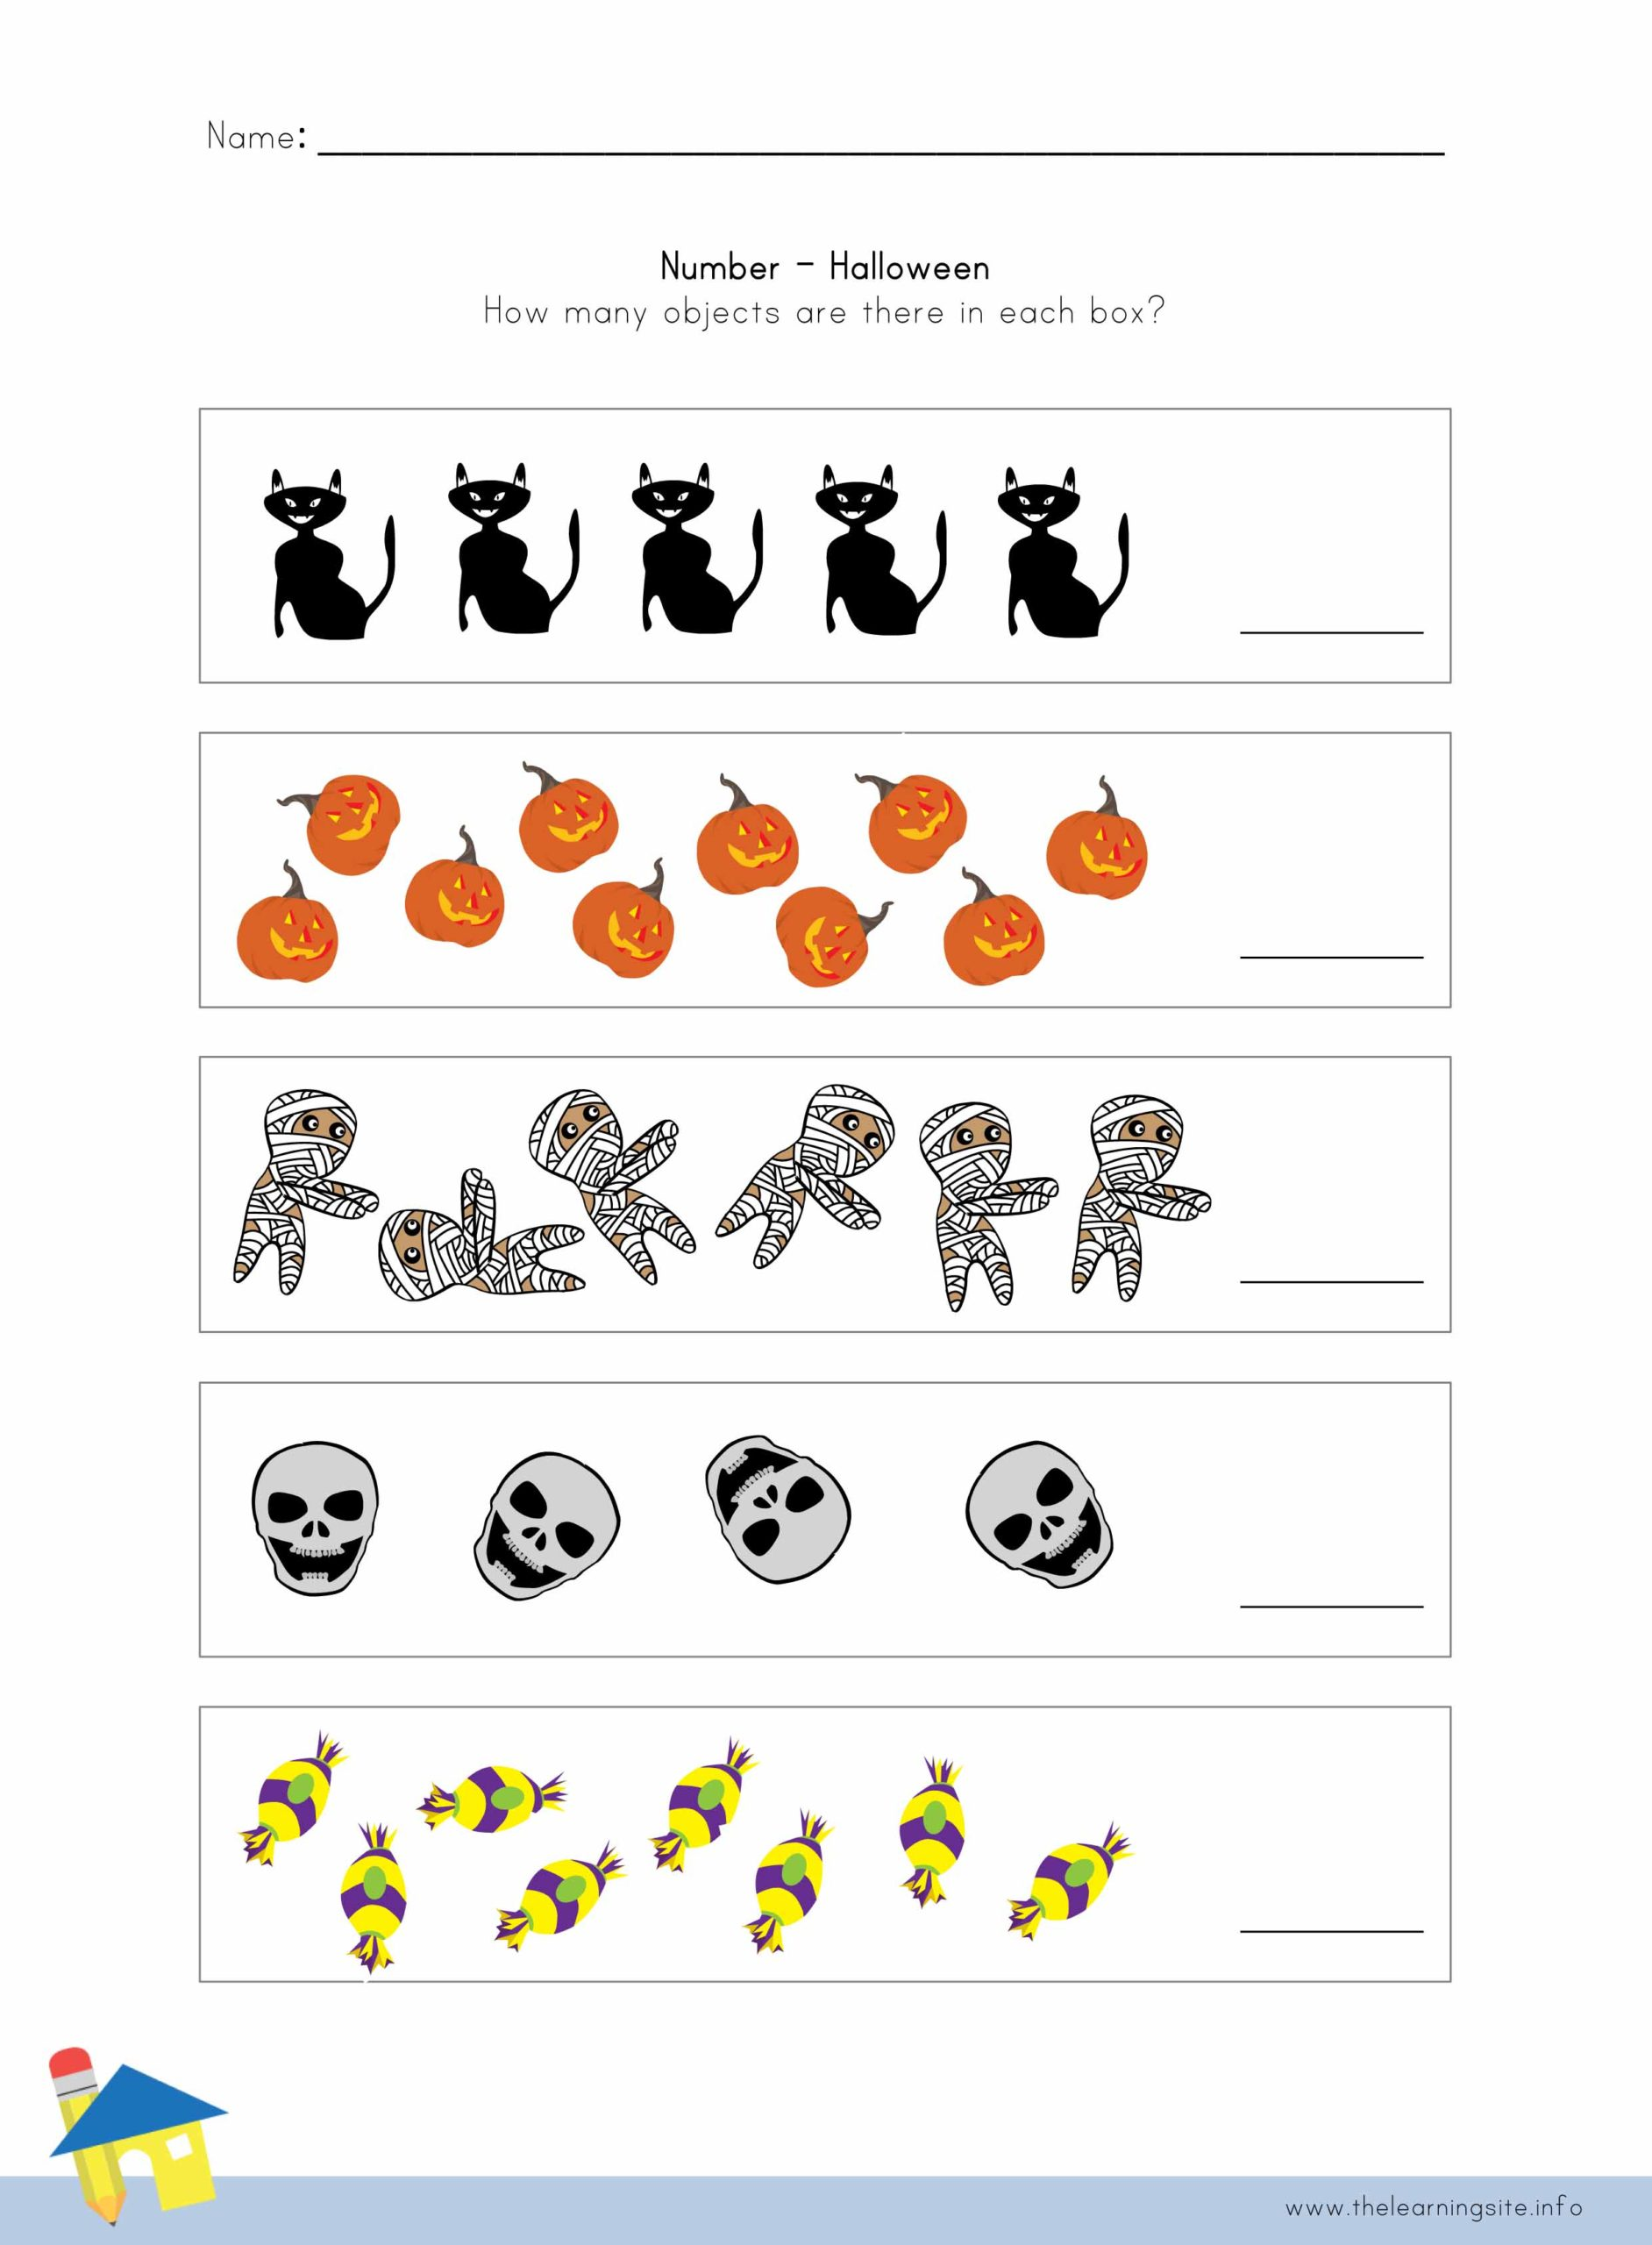 Halloween Number Worksheet 1 The Learning Site